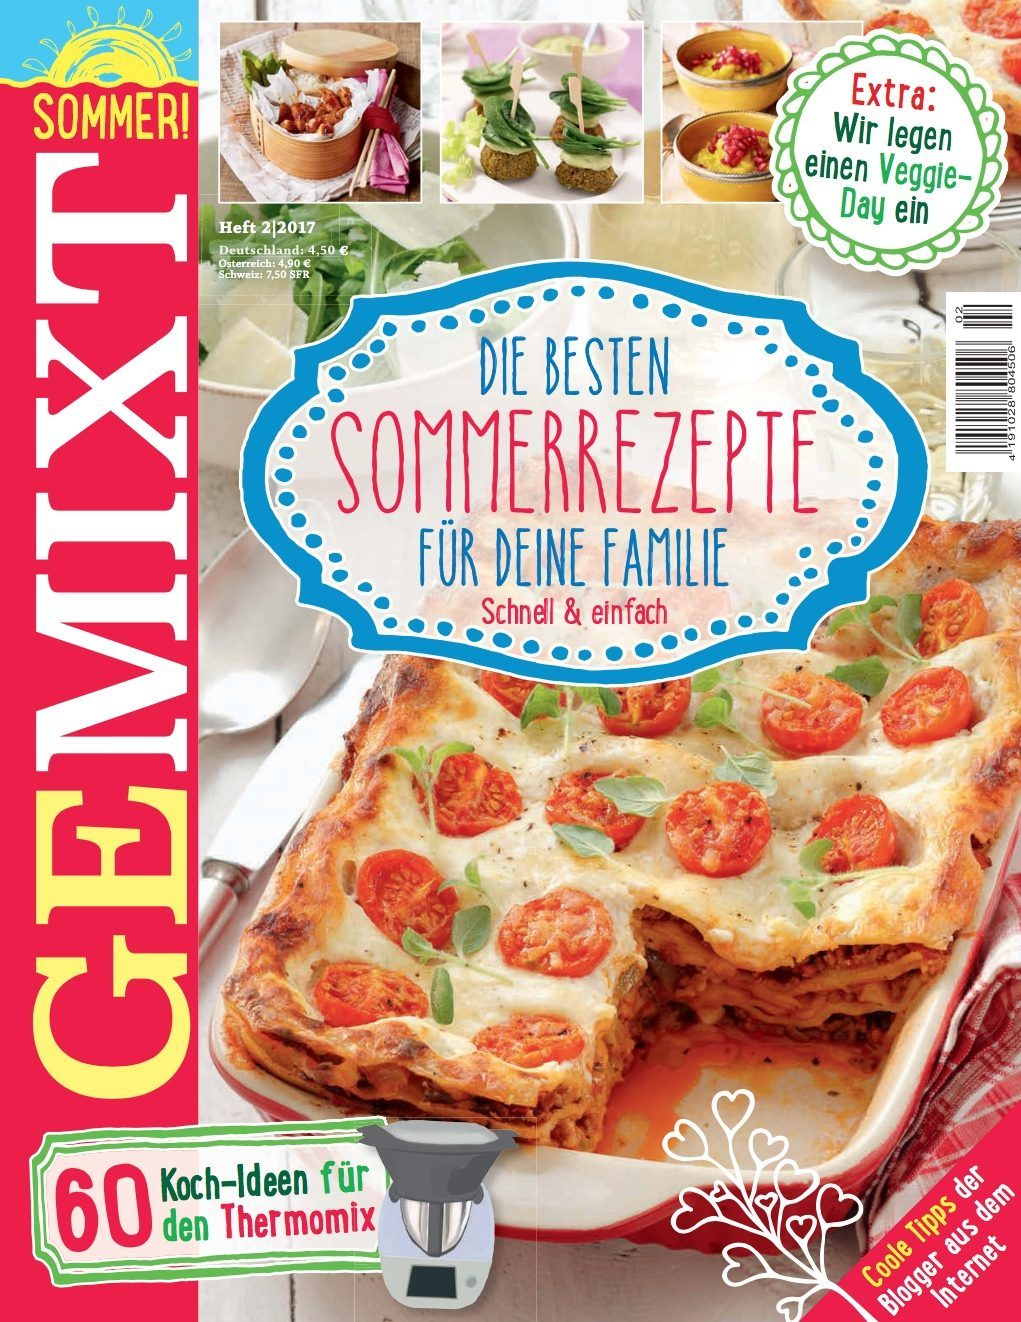 sommer rezepte thermomix